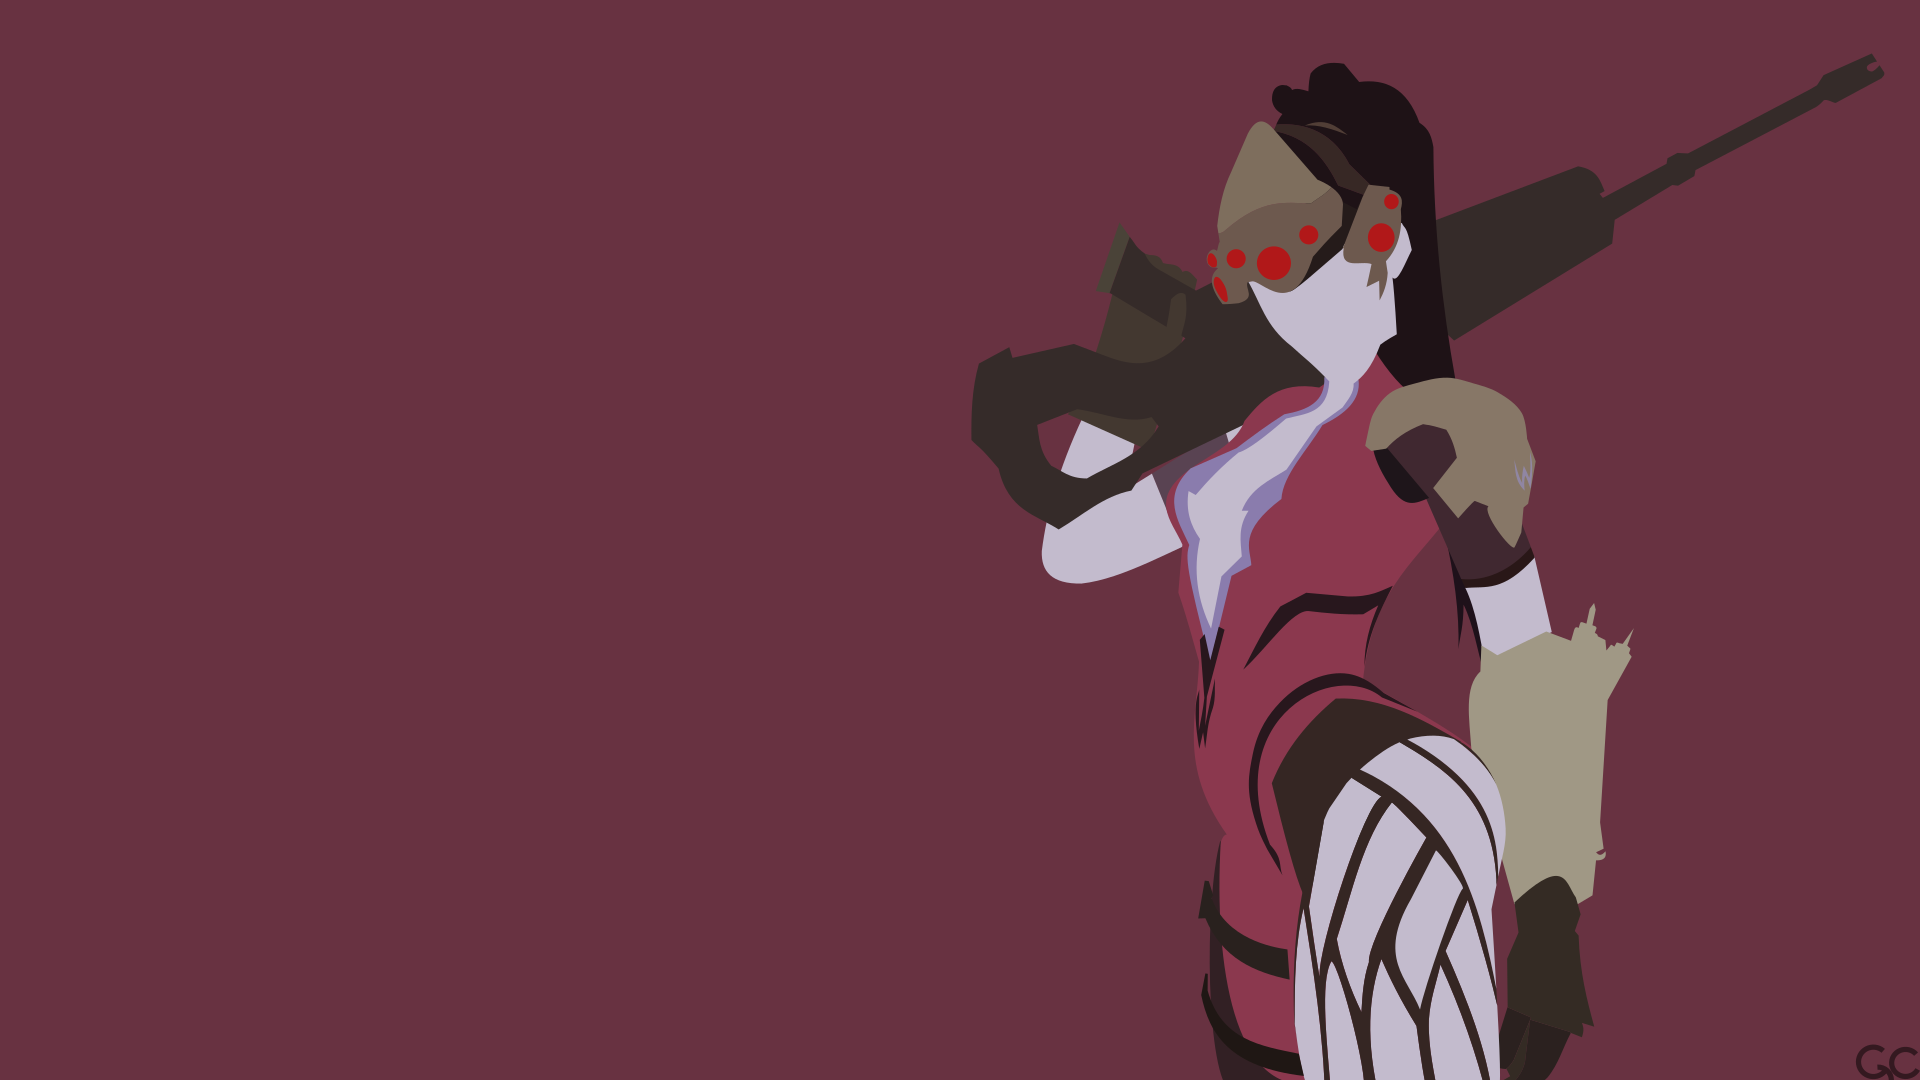 Minimalist widowmaker by garnet638 on deviantart for Deviantart minimal wallpaper